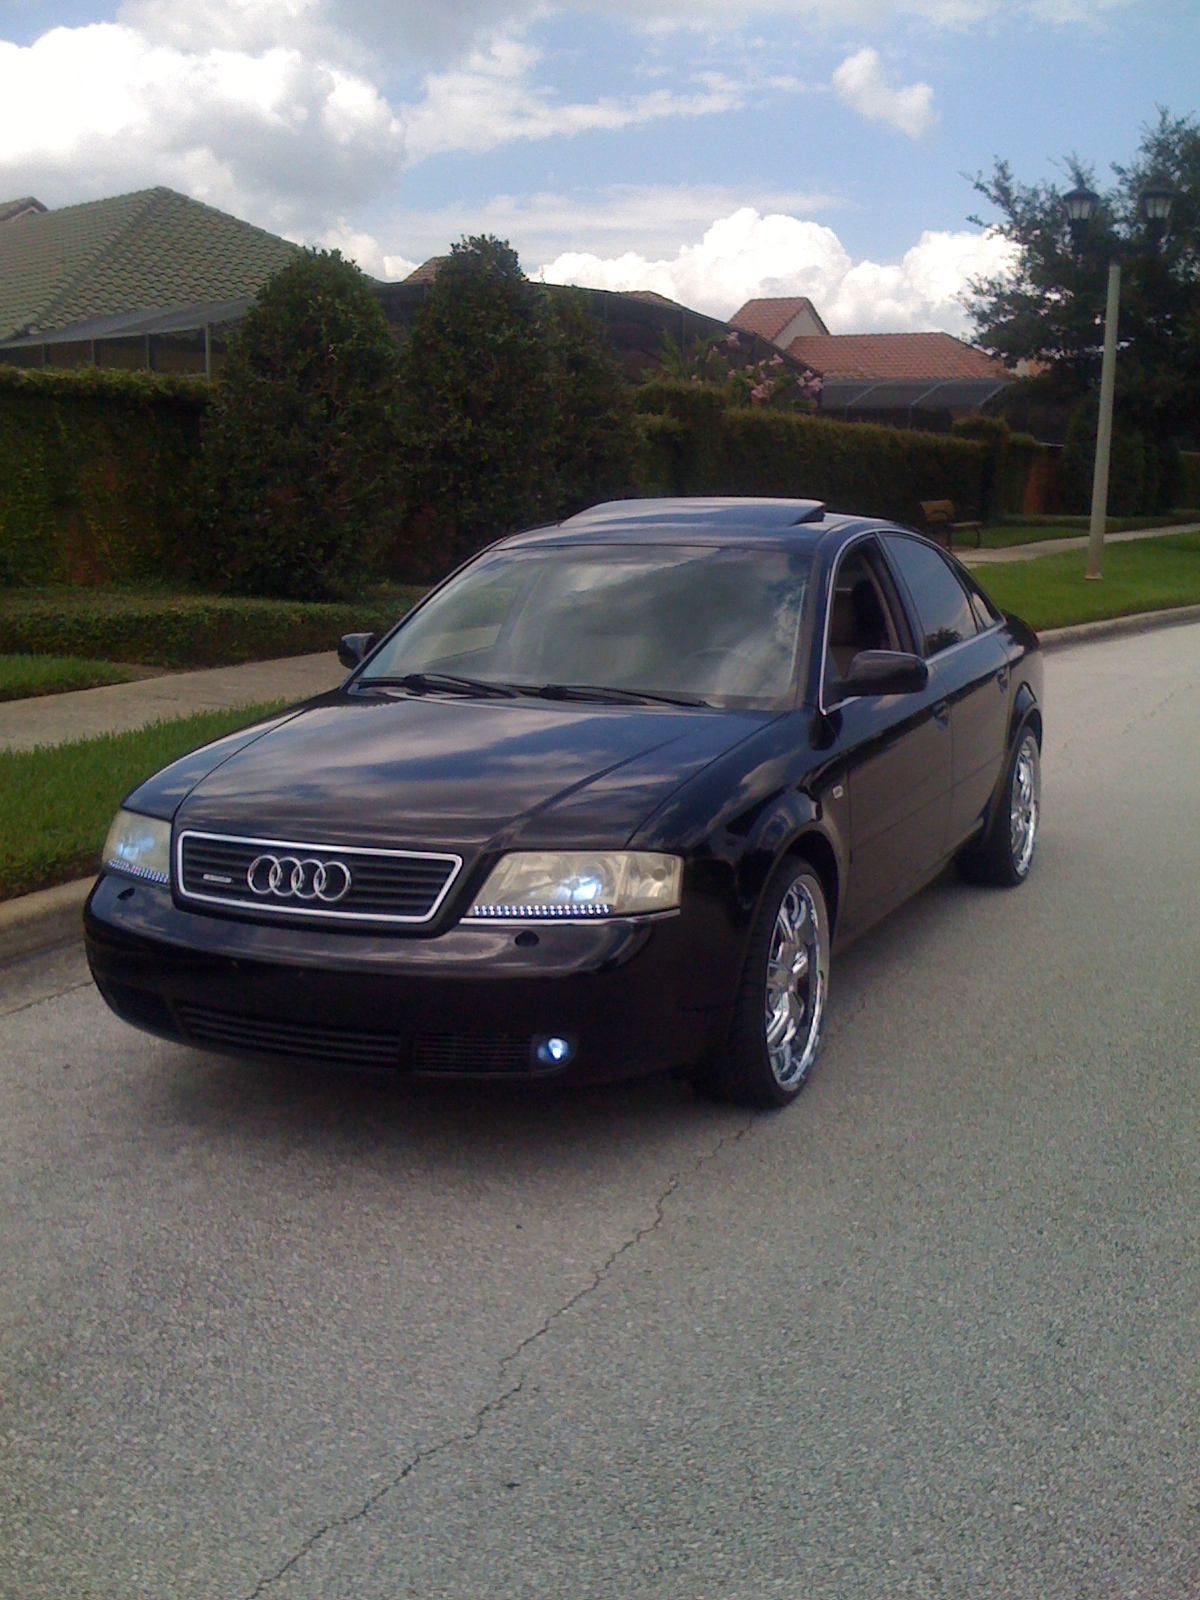 undercoverjeep 2002 audi a6sedan 4d specs photos modification info at cardomain. Black Bedroom Furniture Sets. Home Design Ideas